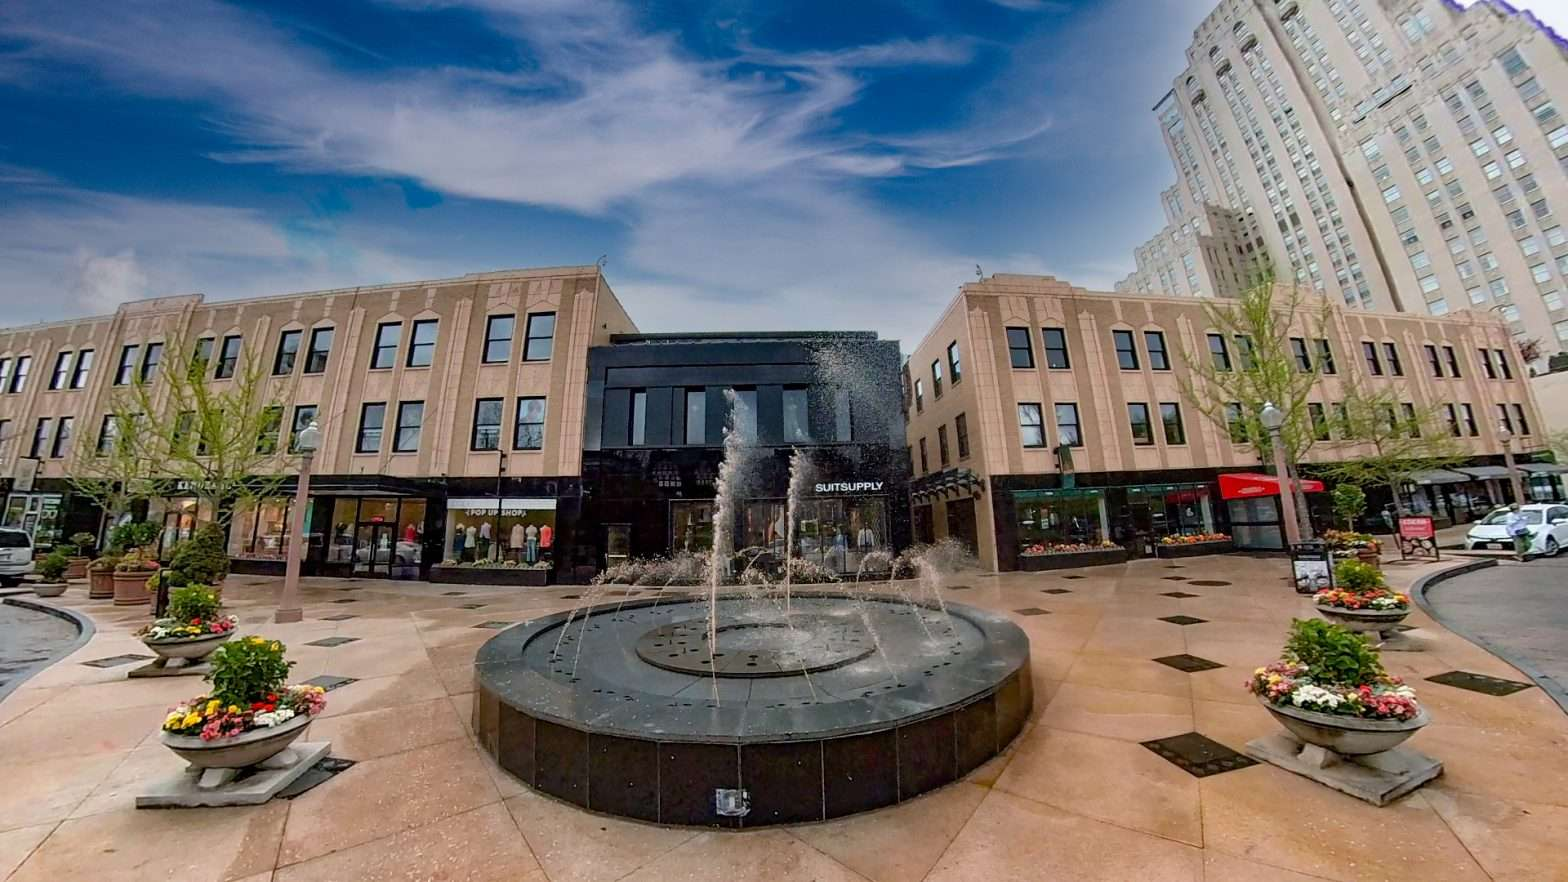 Water Fountain Central West End Shopping Center in April 2021. credit craig currie